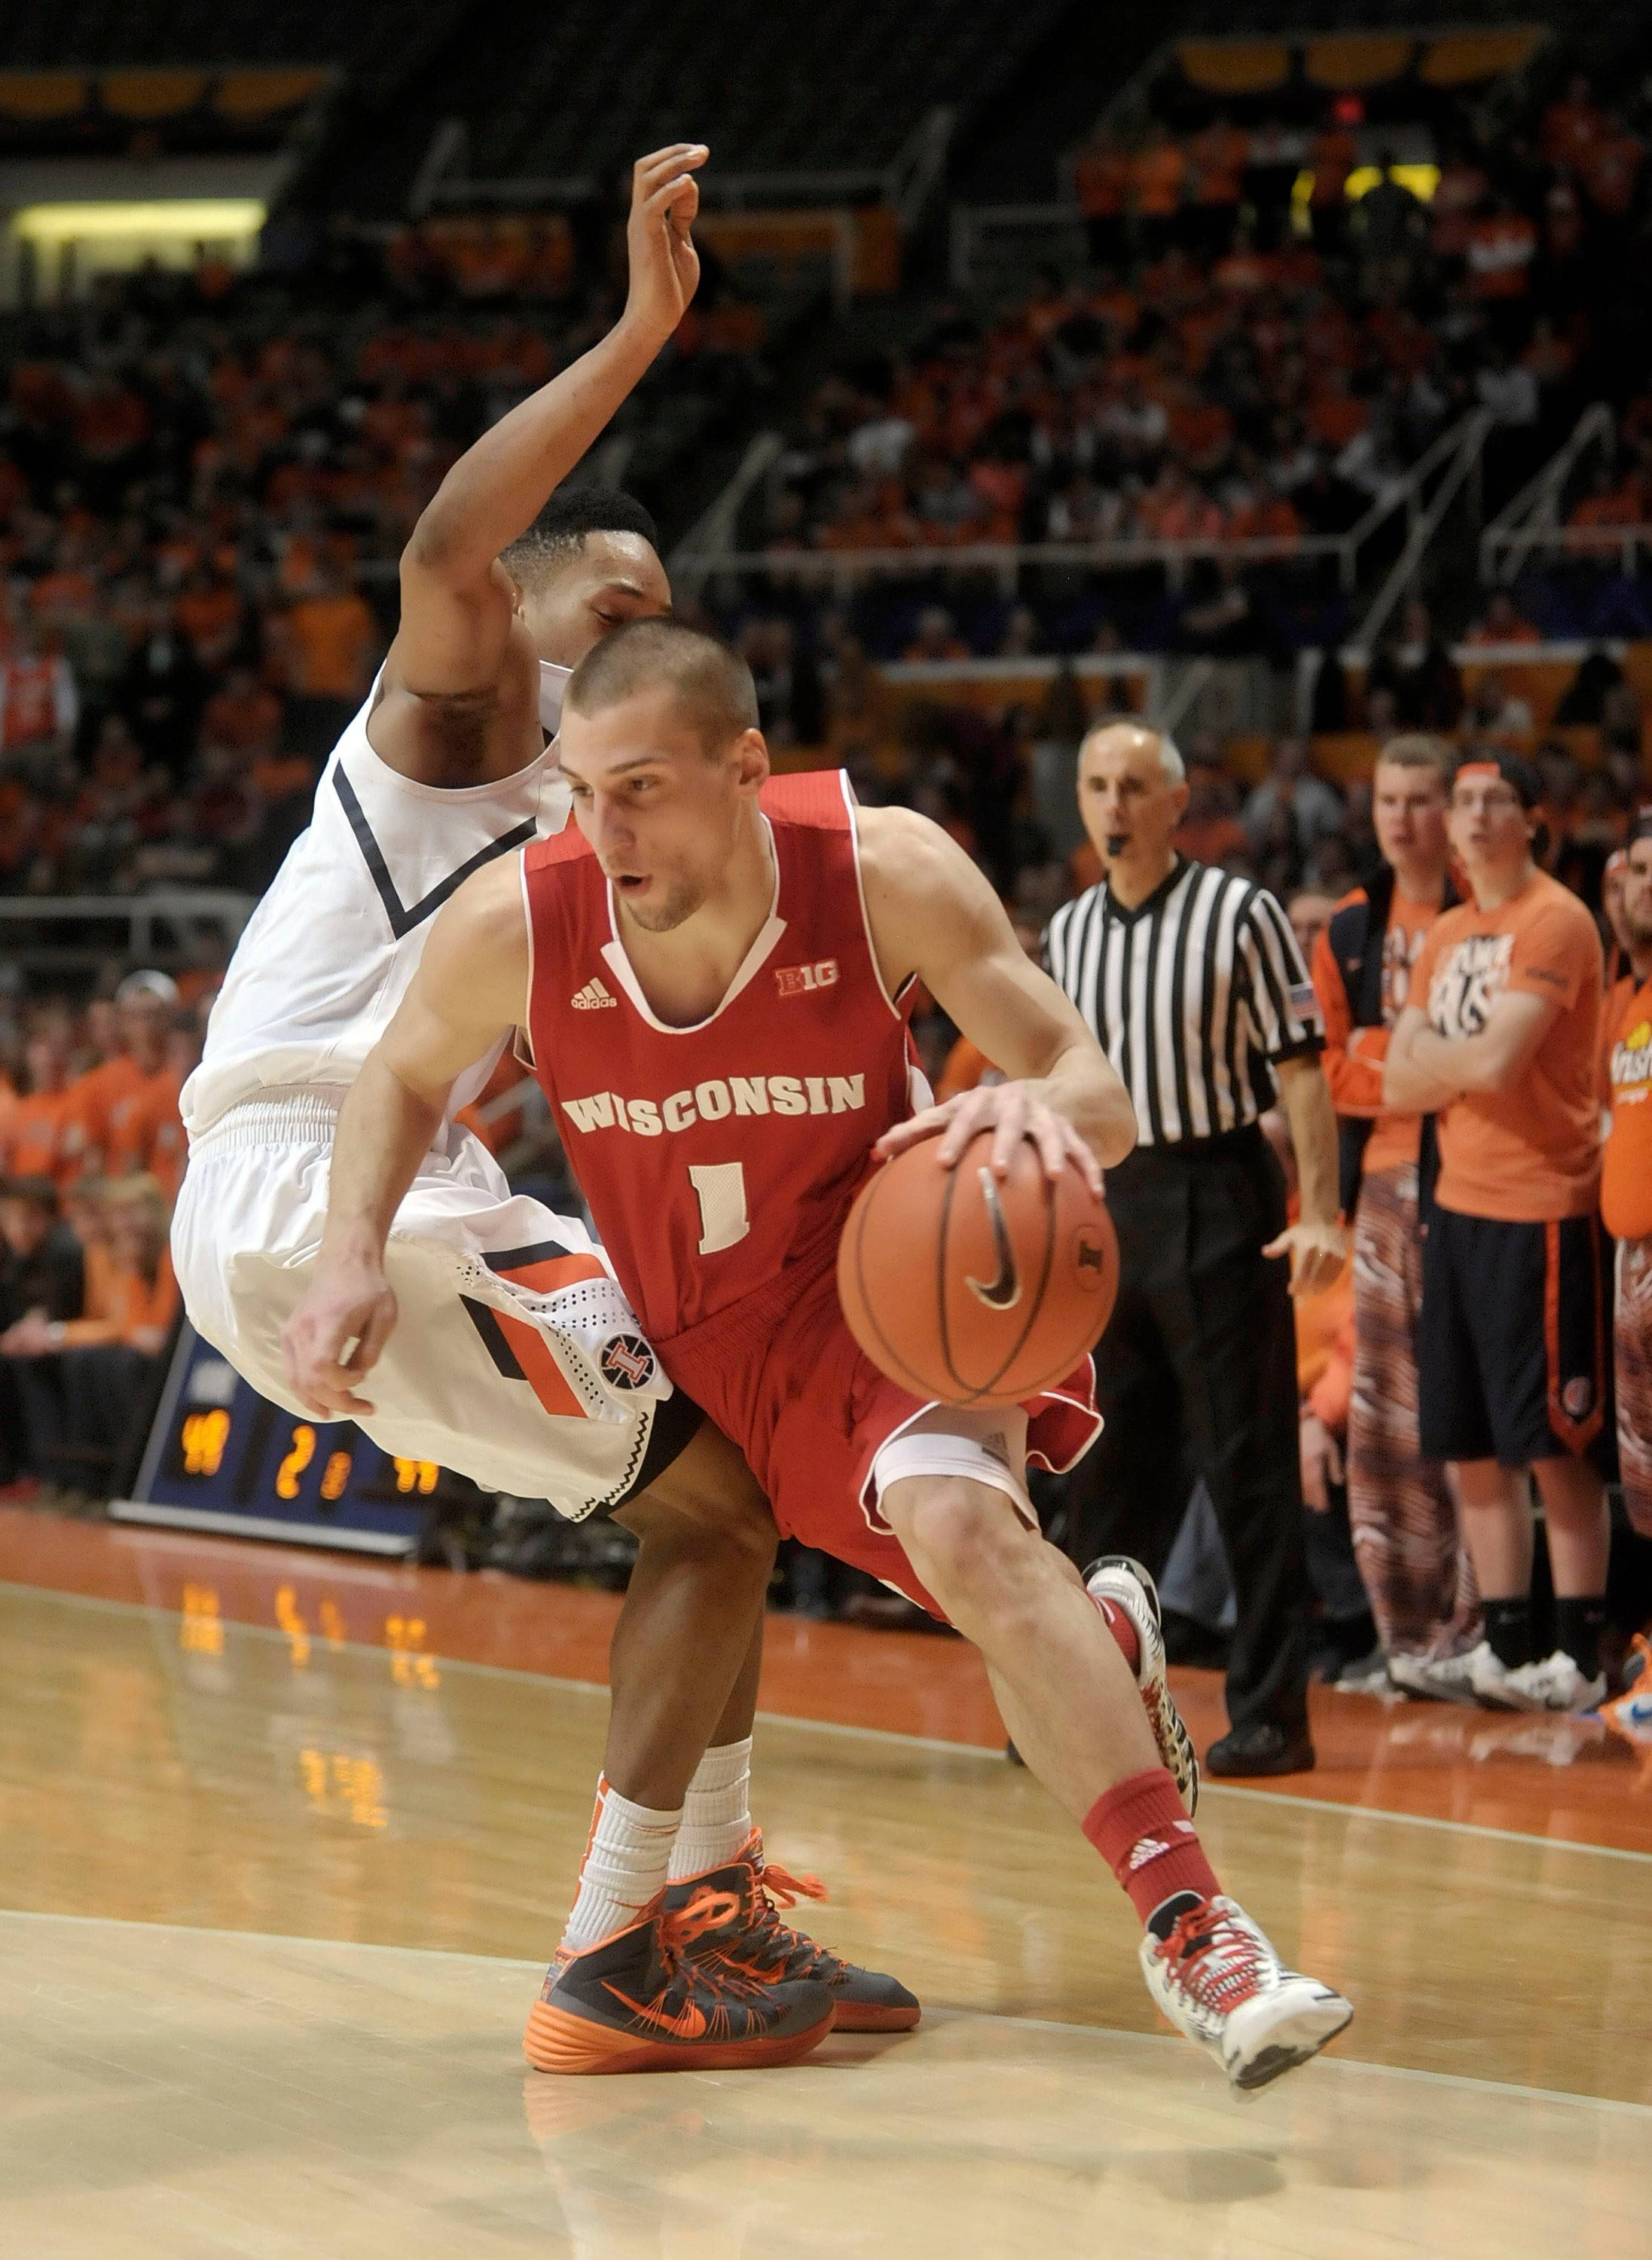 Wisconsin guard Ben Brust drives around Illinois' Joseph Bertrand on Feb. 4 in Champaign. Wisconsin won 75-63.